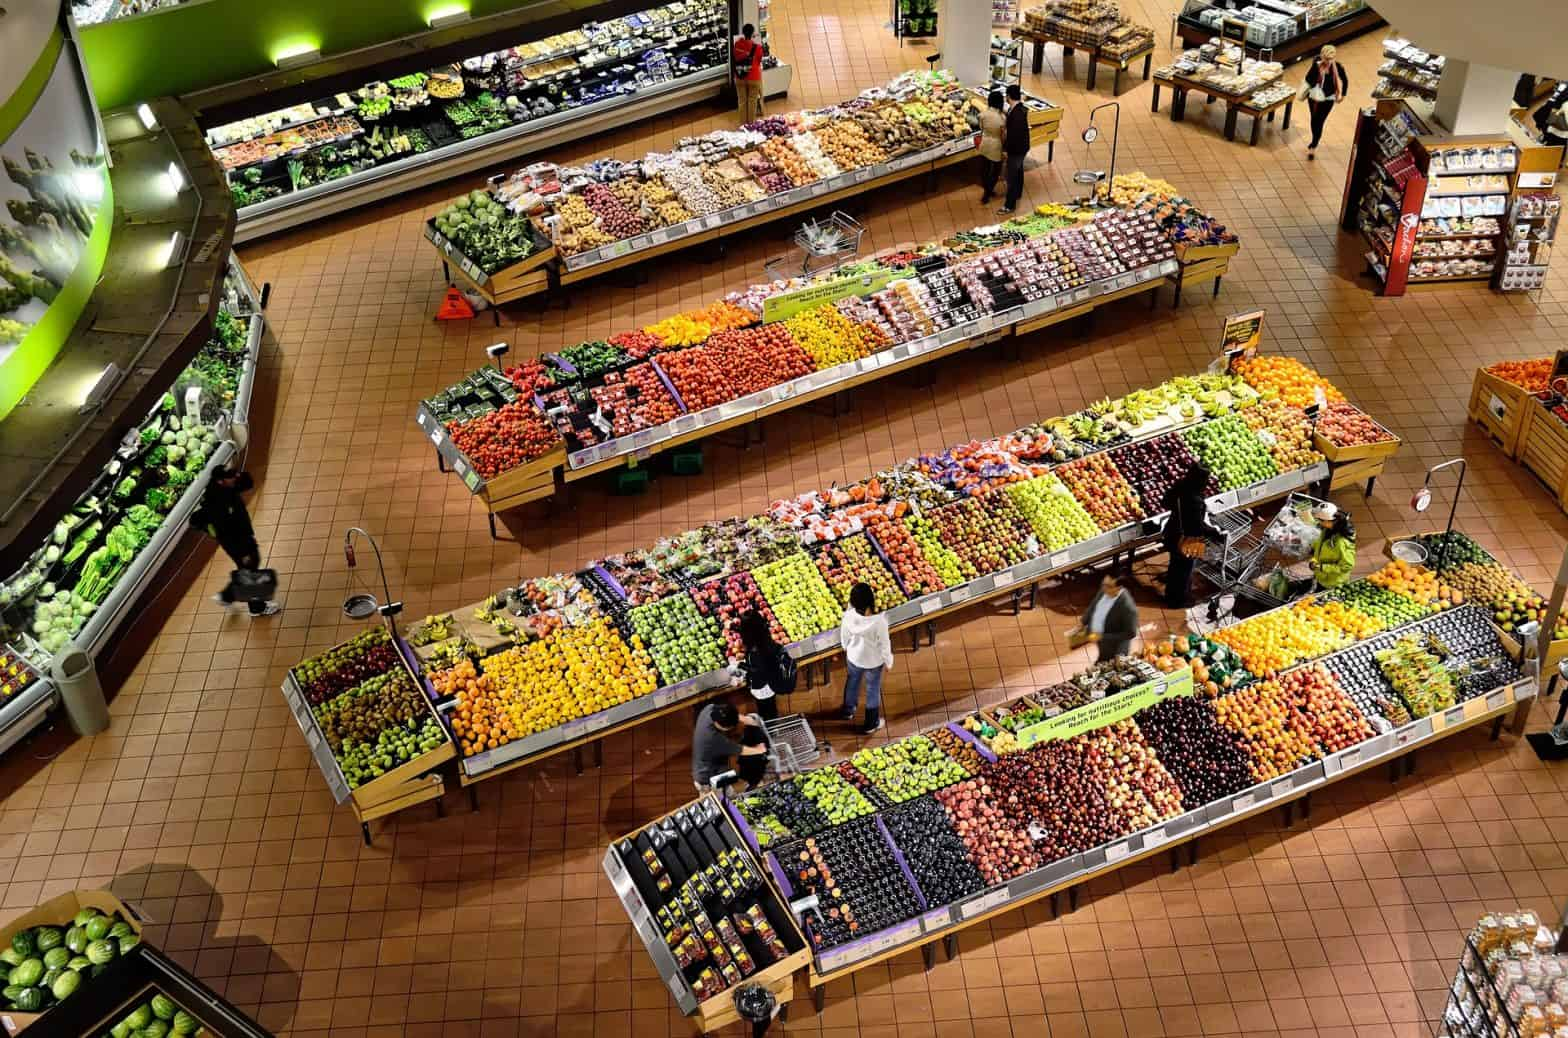 A grocery store with an organized produce section and layout of goods.